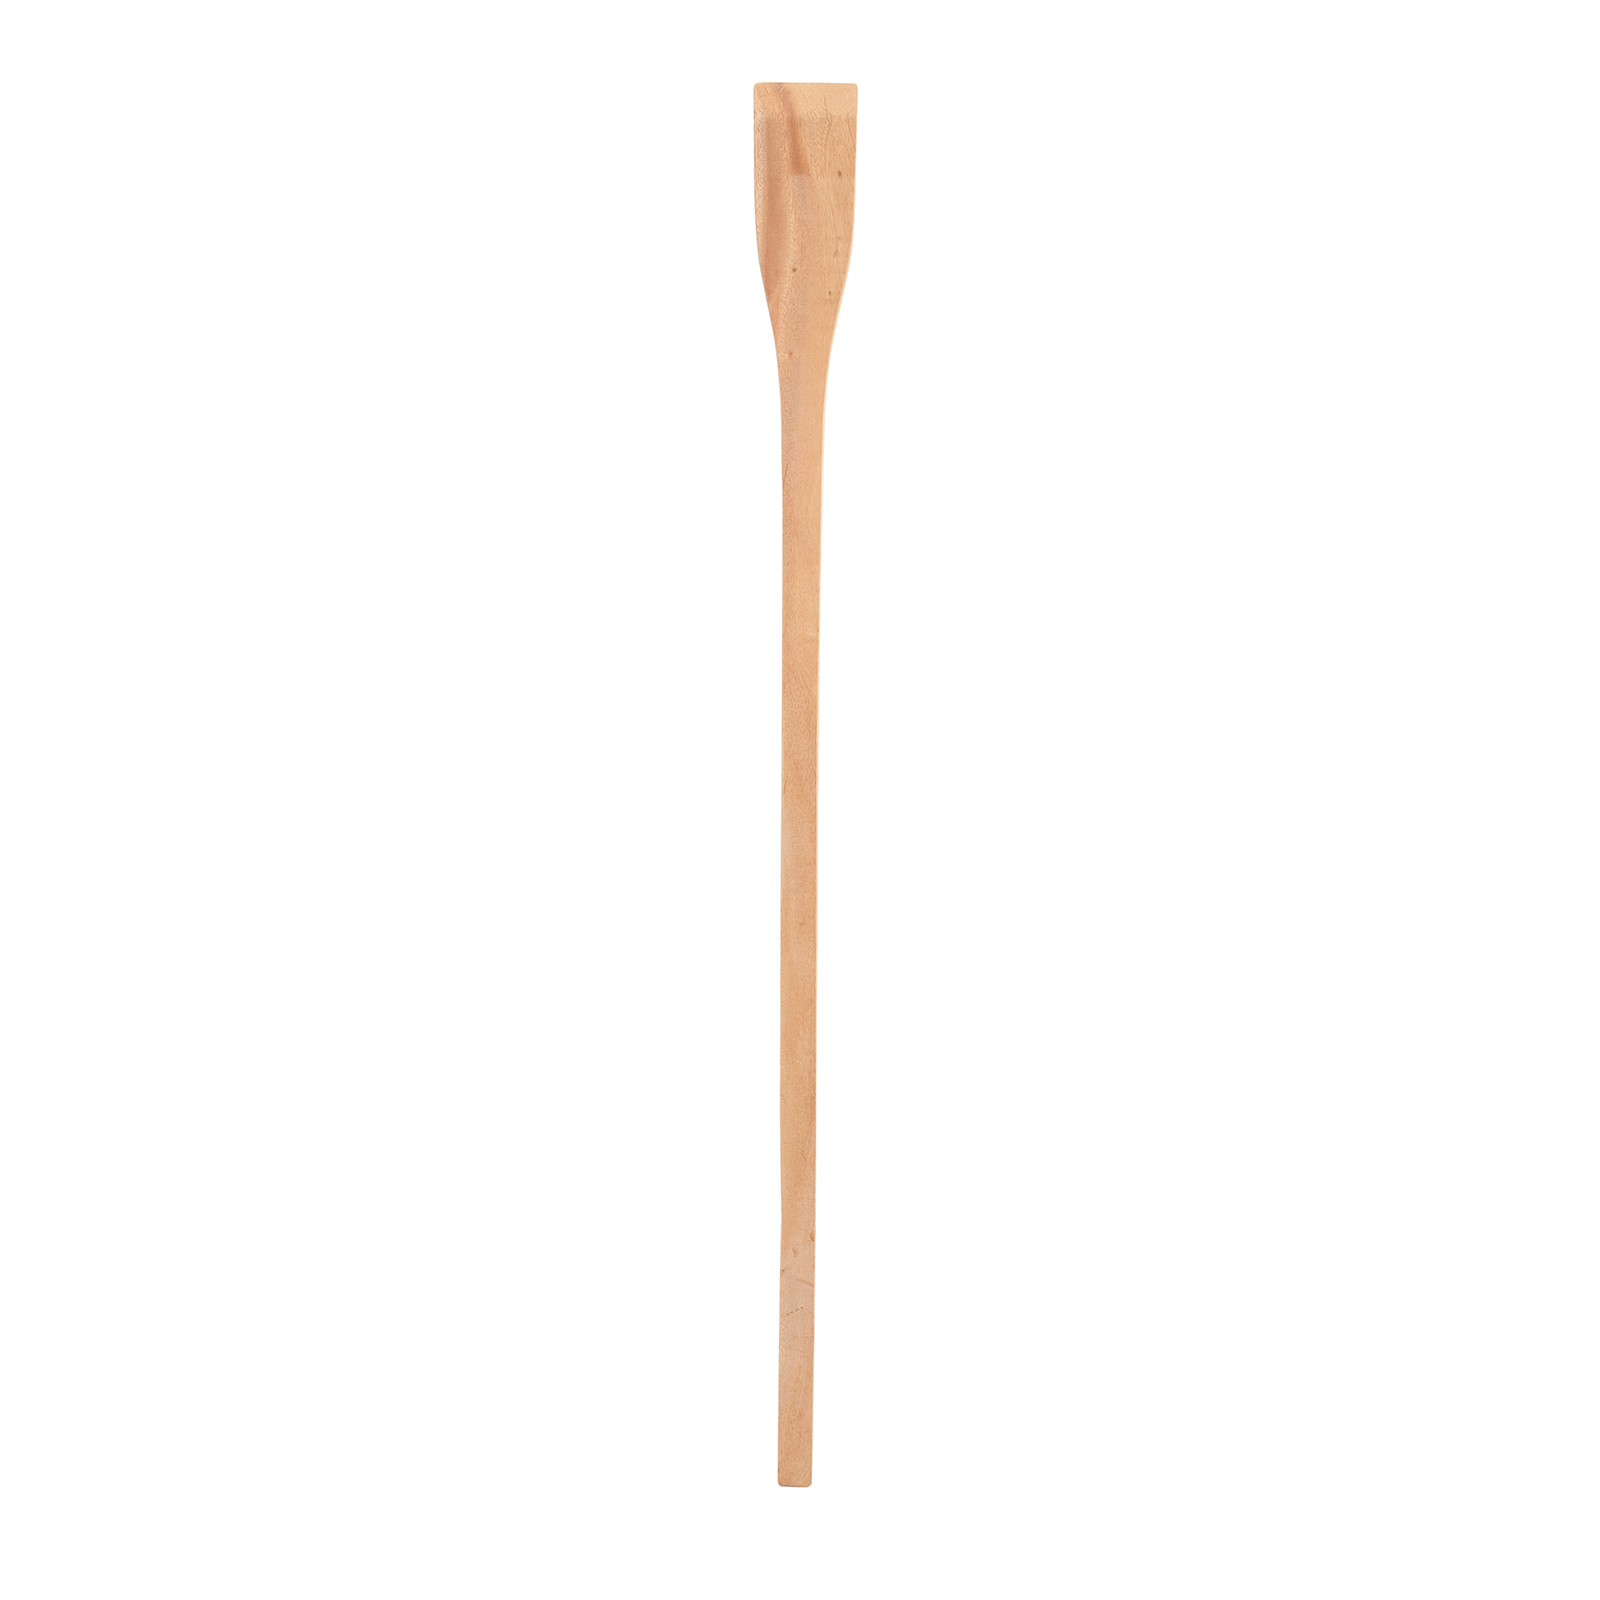 2100-91 Winco WSP-48 mixing paddle